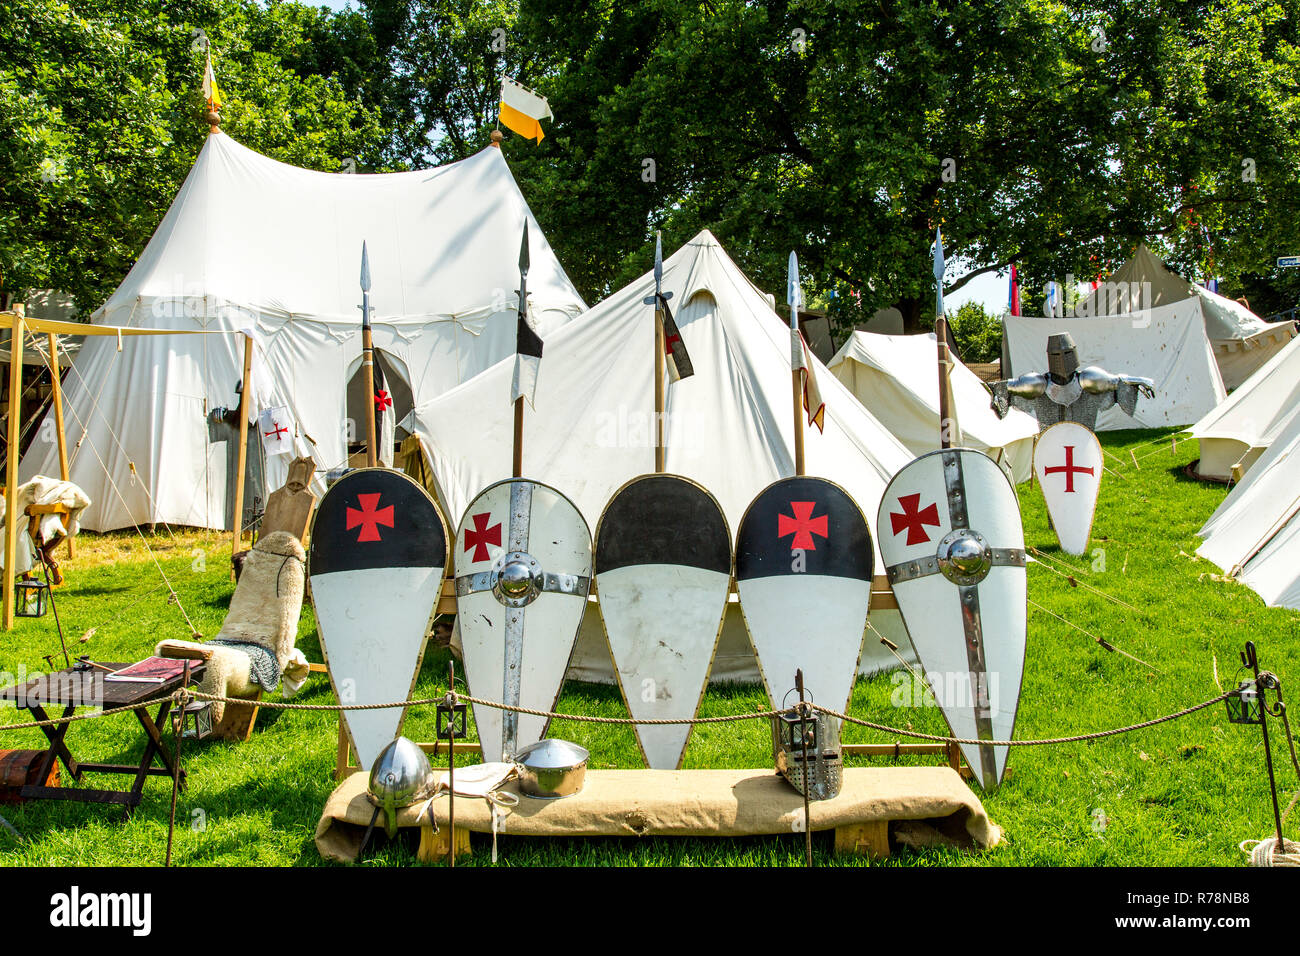 Medieval spectacle, joust with knights' camp, at Broich castle, Mülheim an der Ruhr, North Rhine-Westphalia Castle, Germany - Stock Image